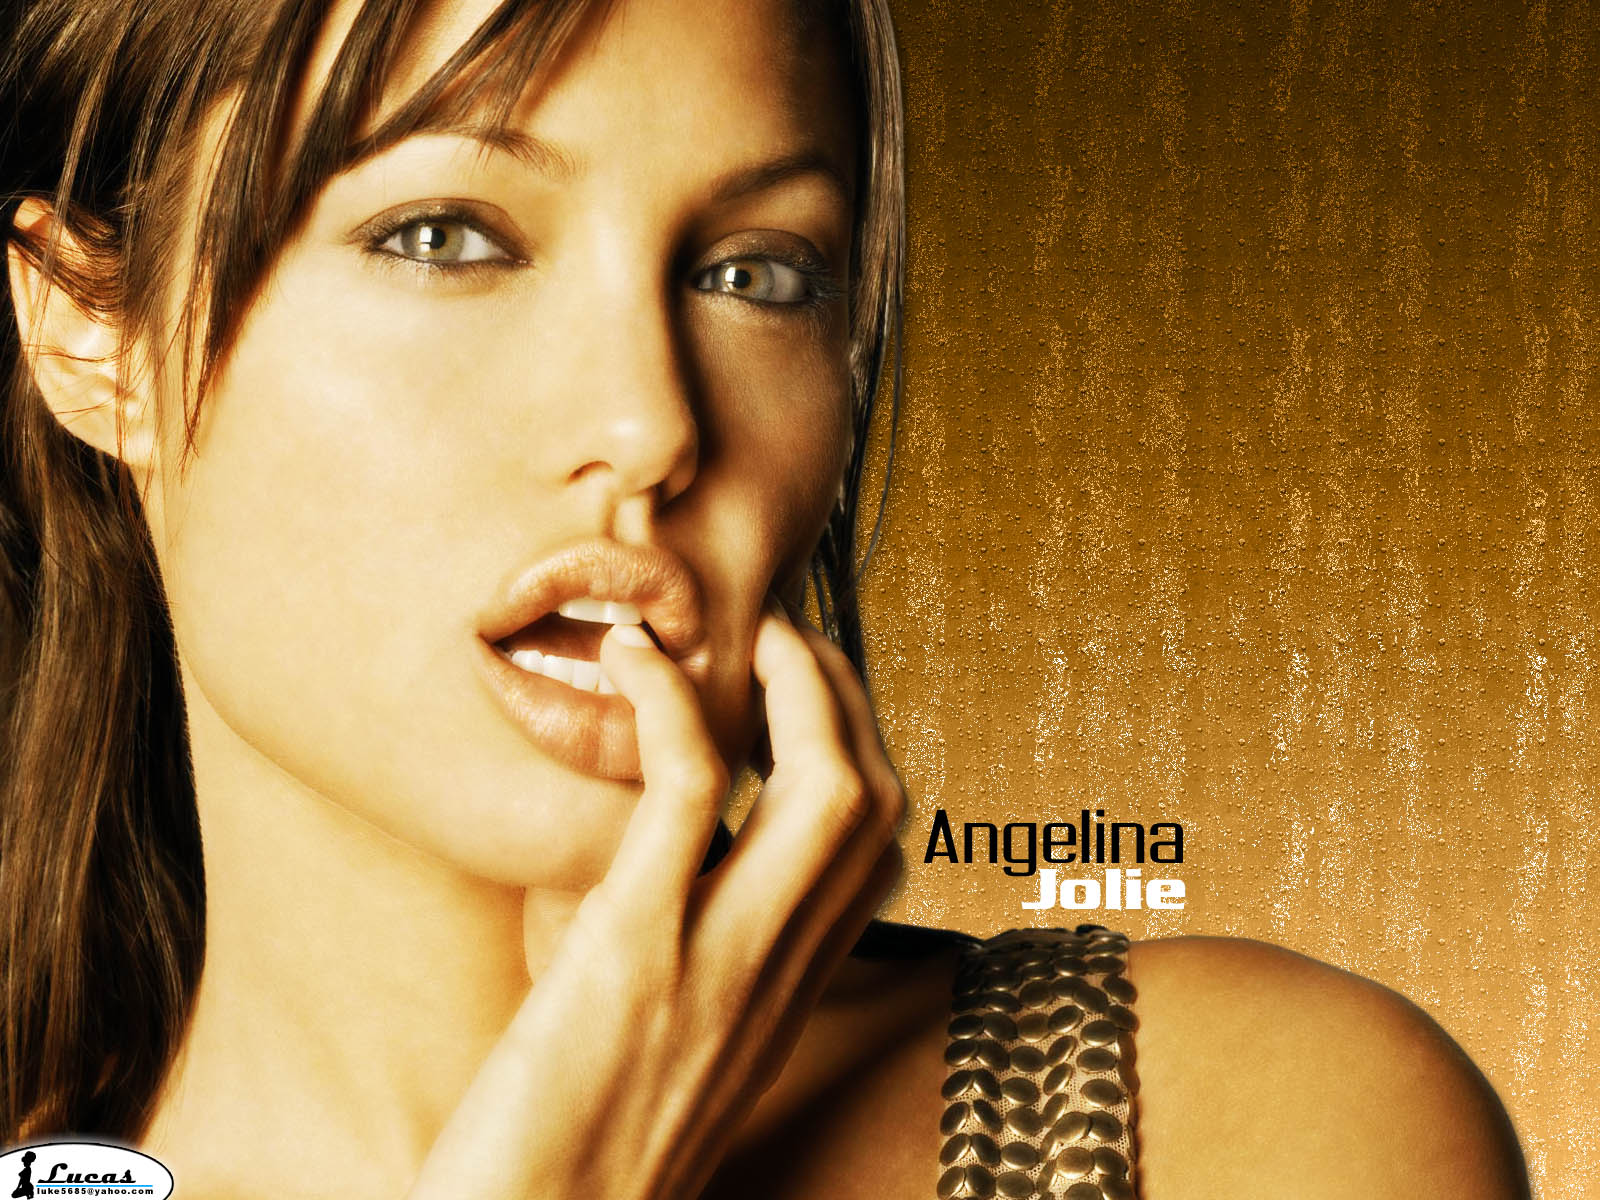 angelina jolie hot sexy